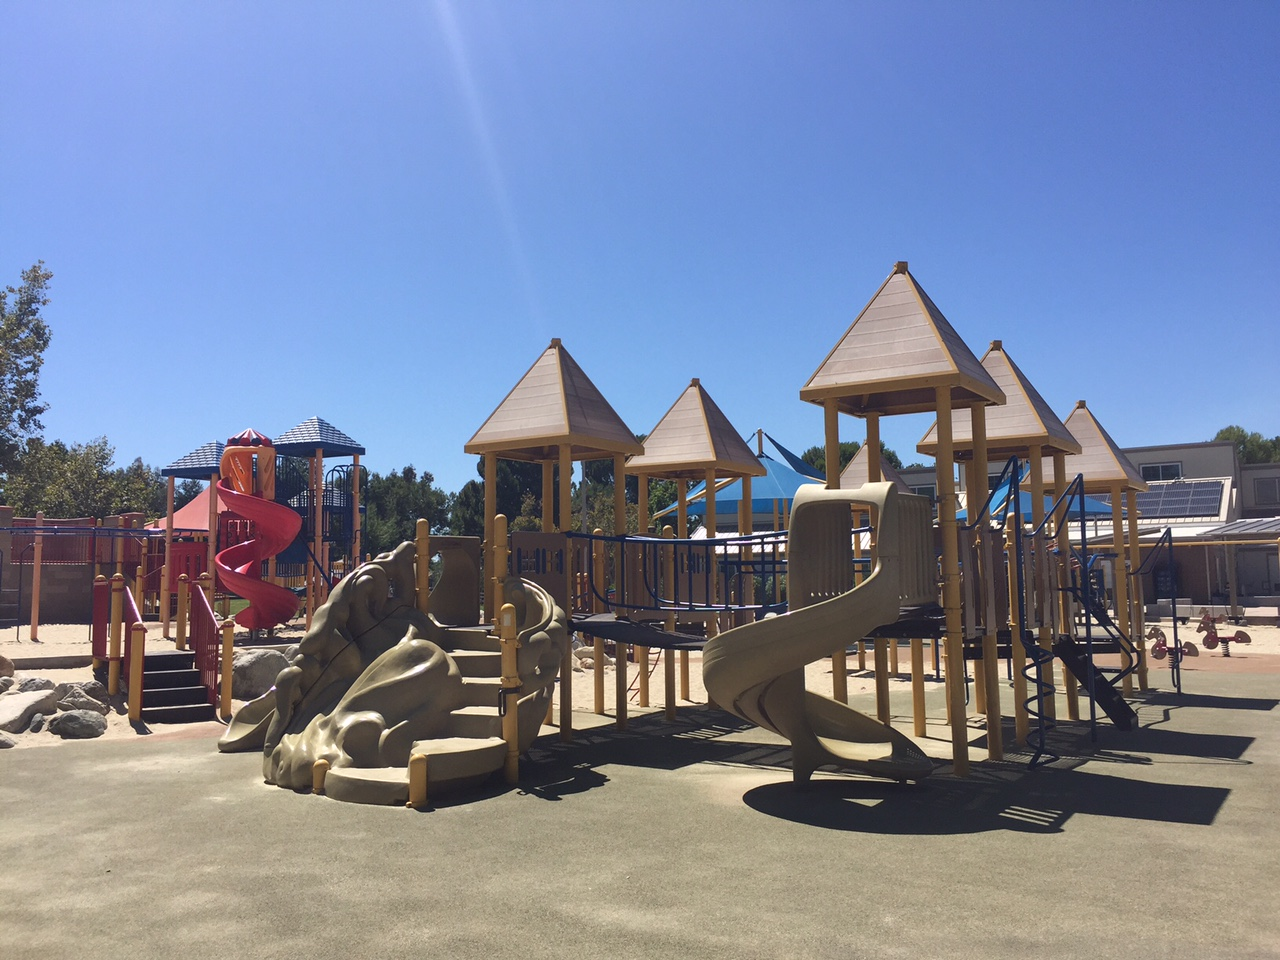 Northwood Community Park Quot Castle Park Quot In Irvine Oc Mom Blog